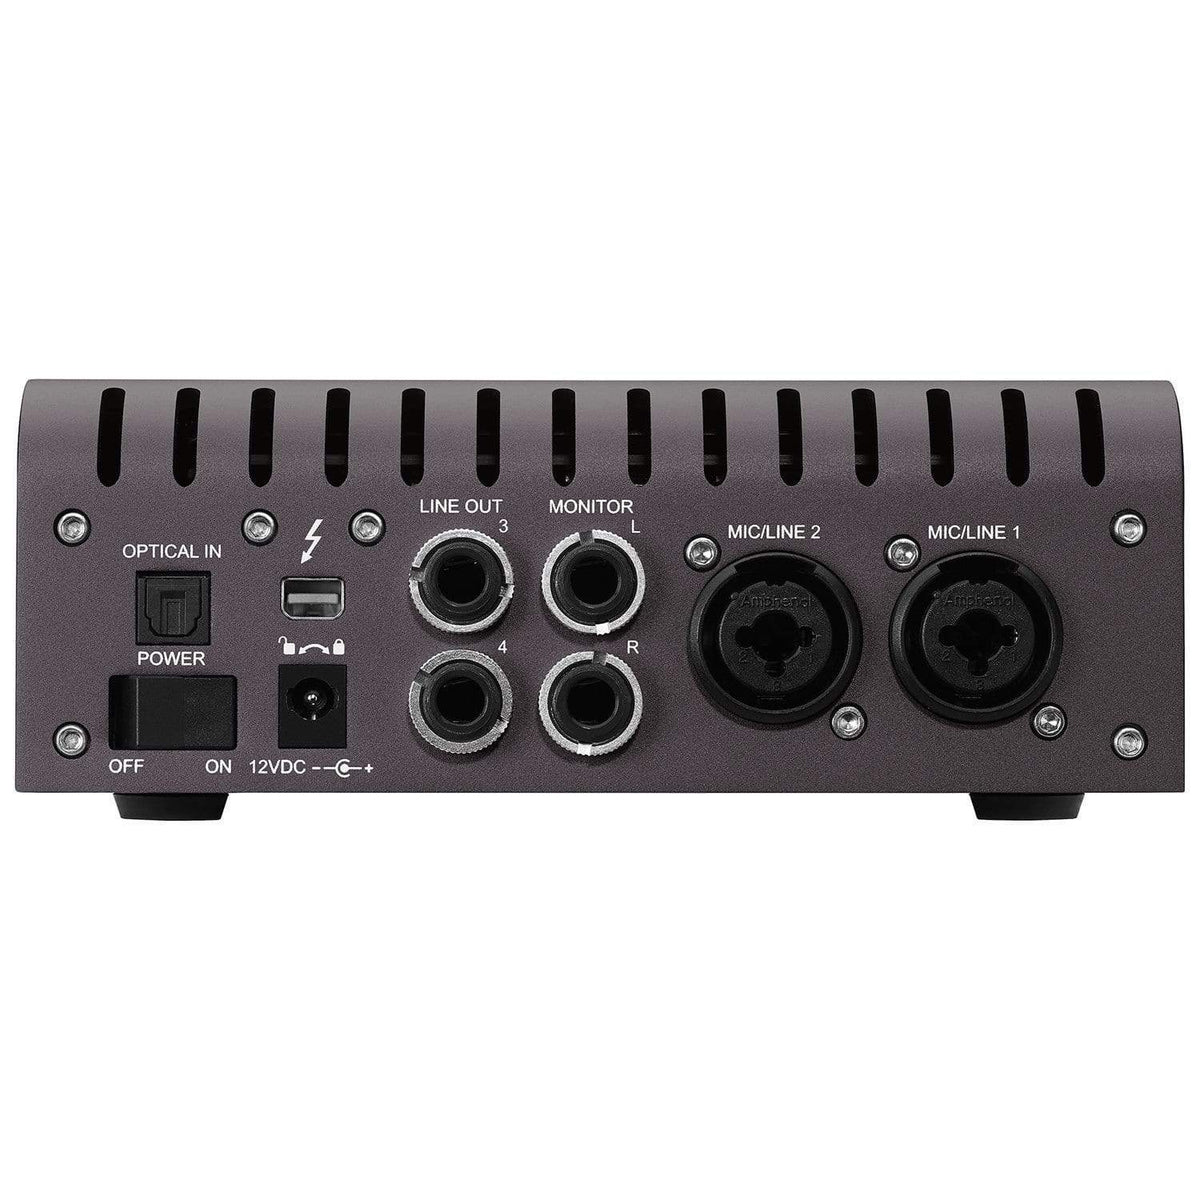 Universal Audio Audio Interface Universal Audio Apollo Twin MKII SOLO Thunderbolt Audio Interface